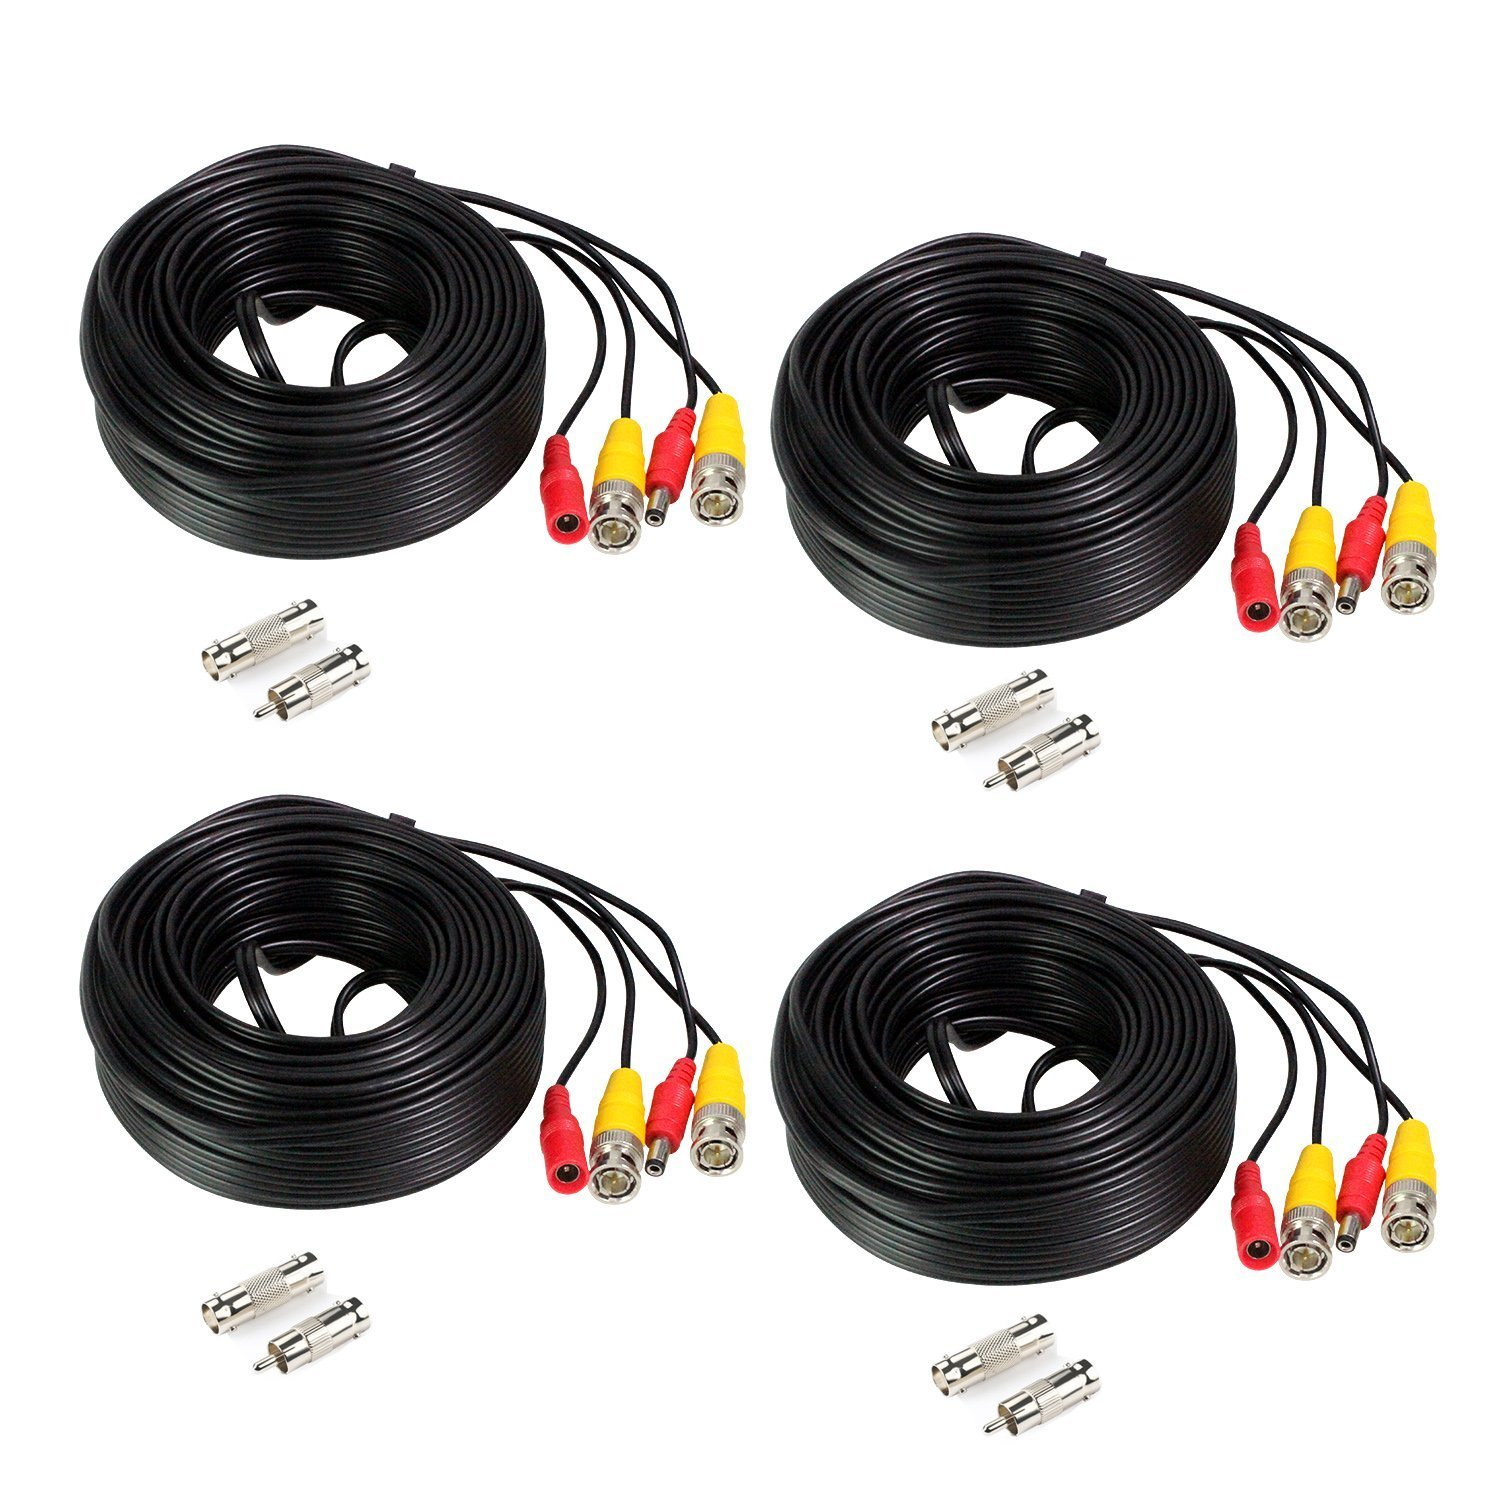 Durable Service Hykamic 4 Pack 60ft Bnc Video Power Cable Security Surveillance Camera Wiring Wire Cord For Cctv